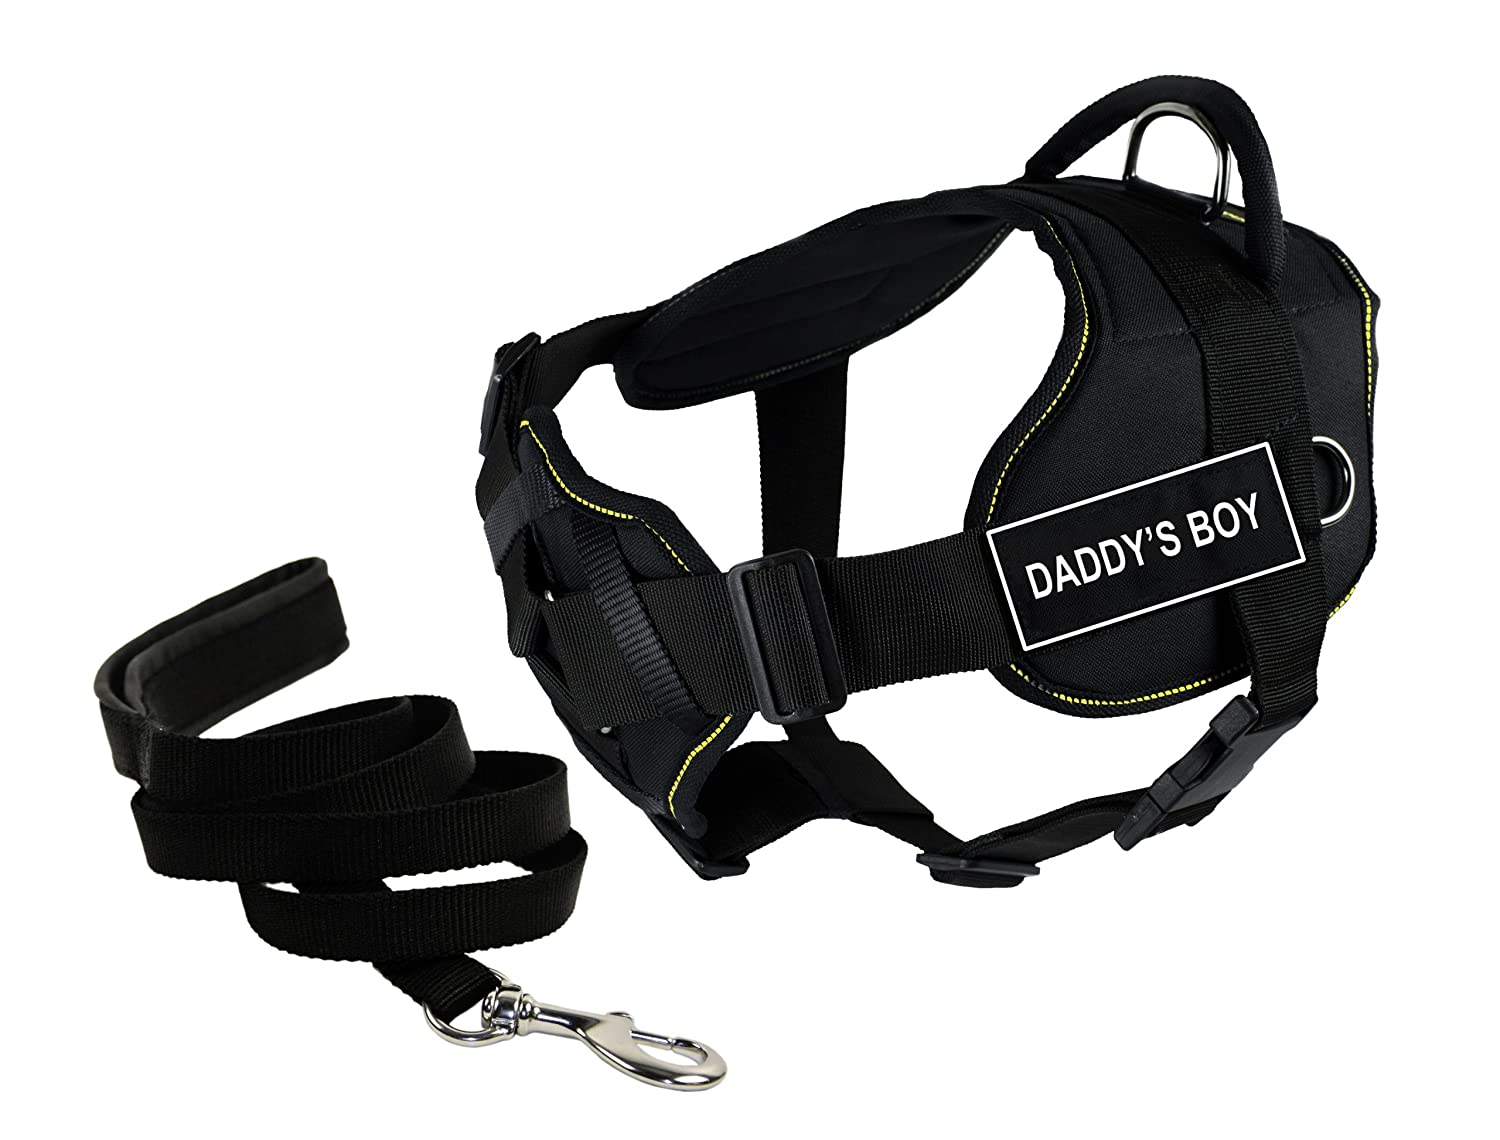 Dean & Tyler's DT Fun Chest Support DADDY'S BOY Harness, Large, with 6 ft Padded Puppy Leash.